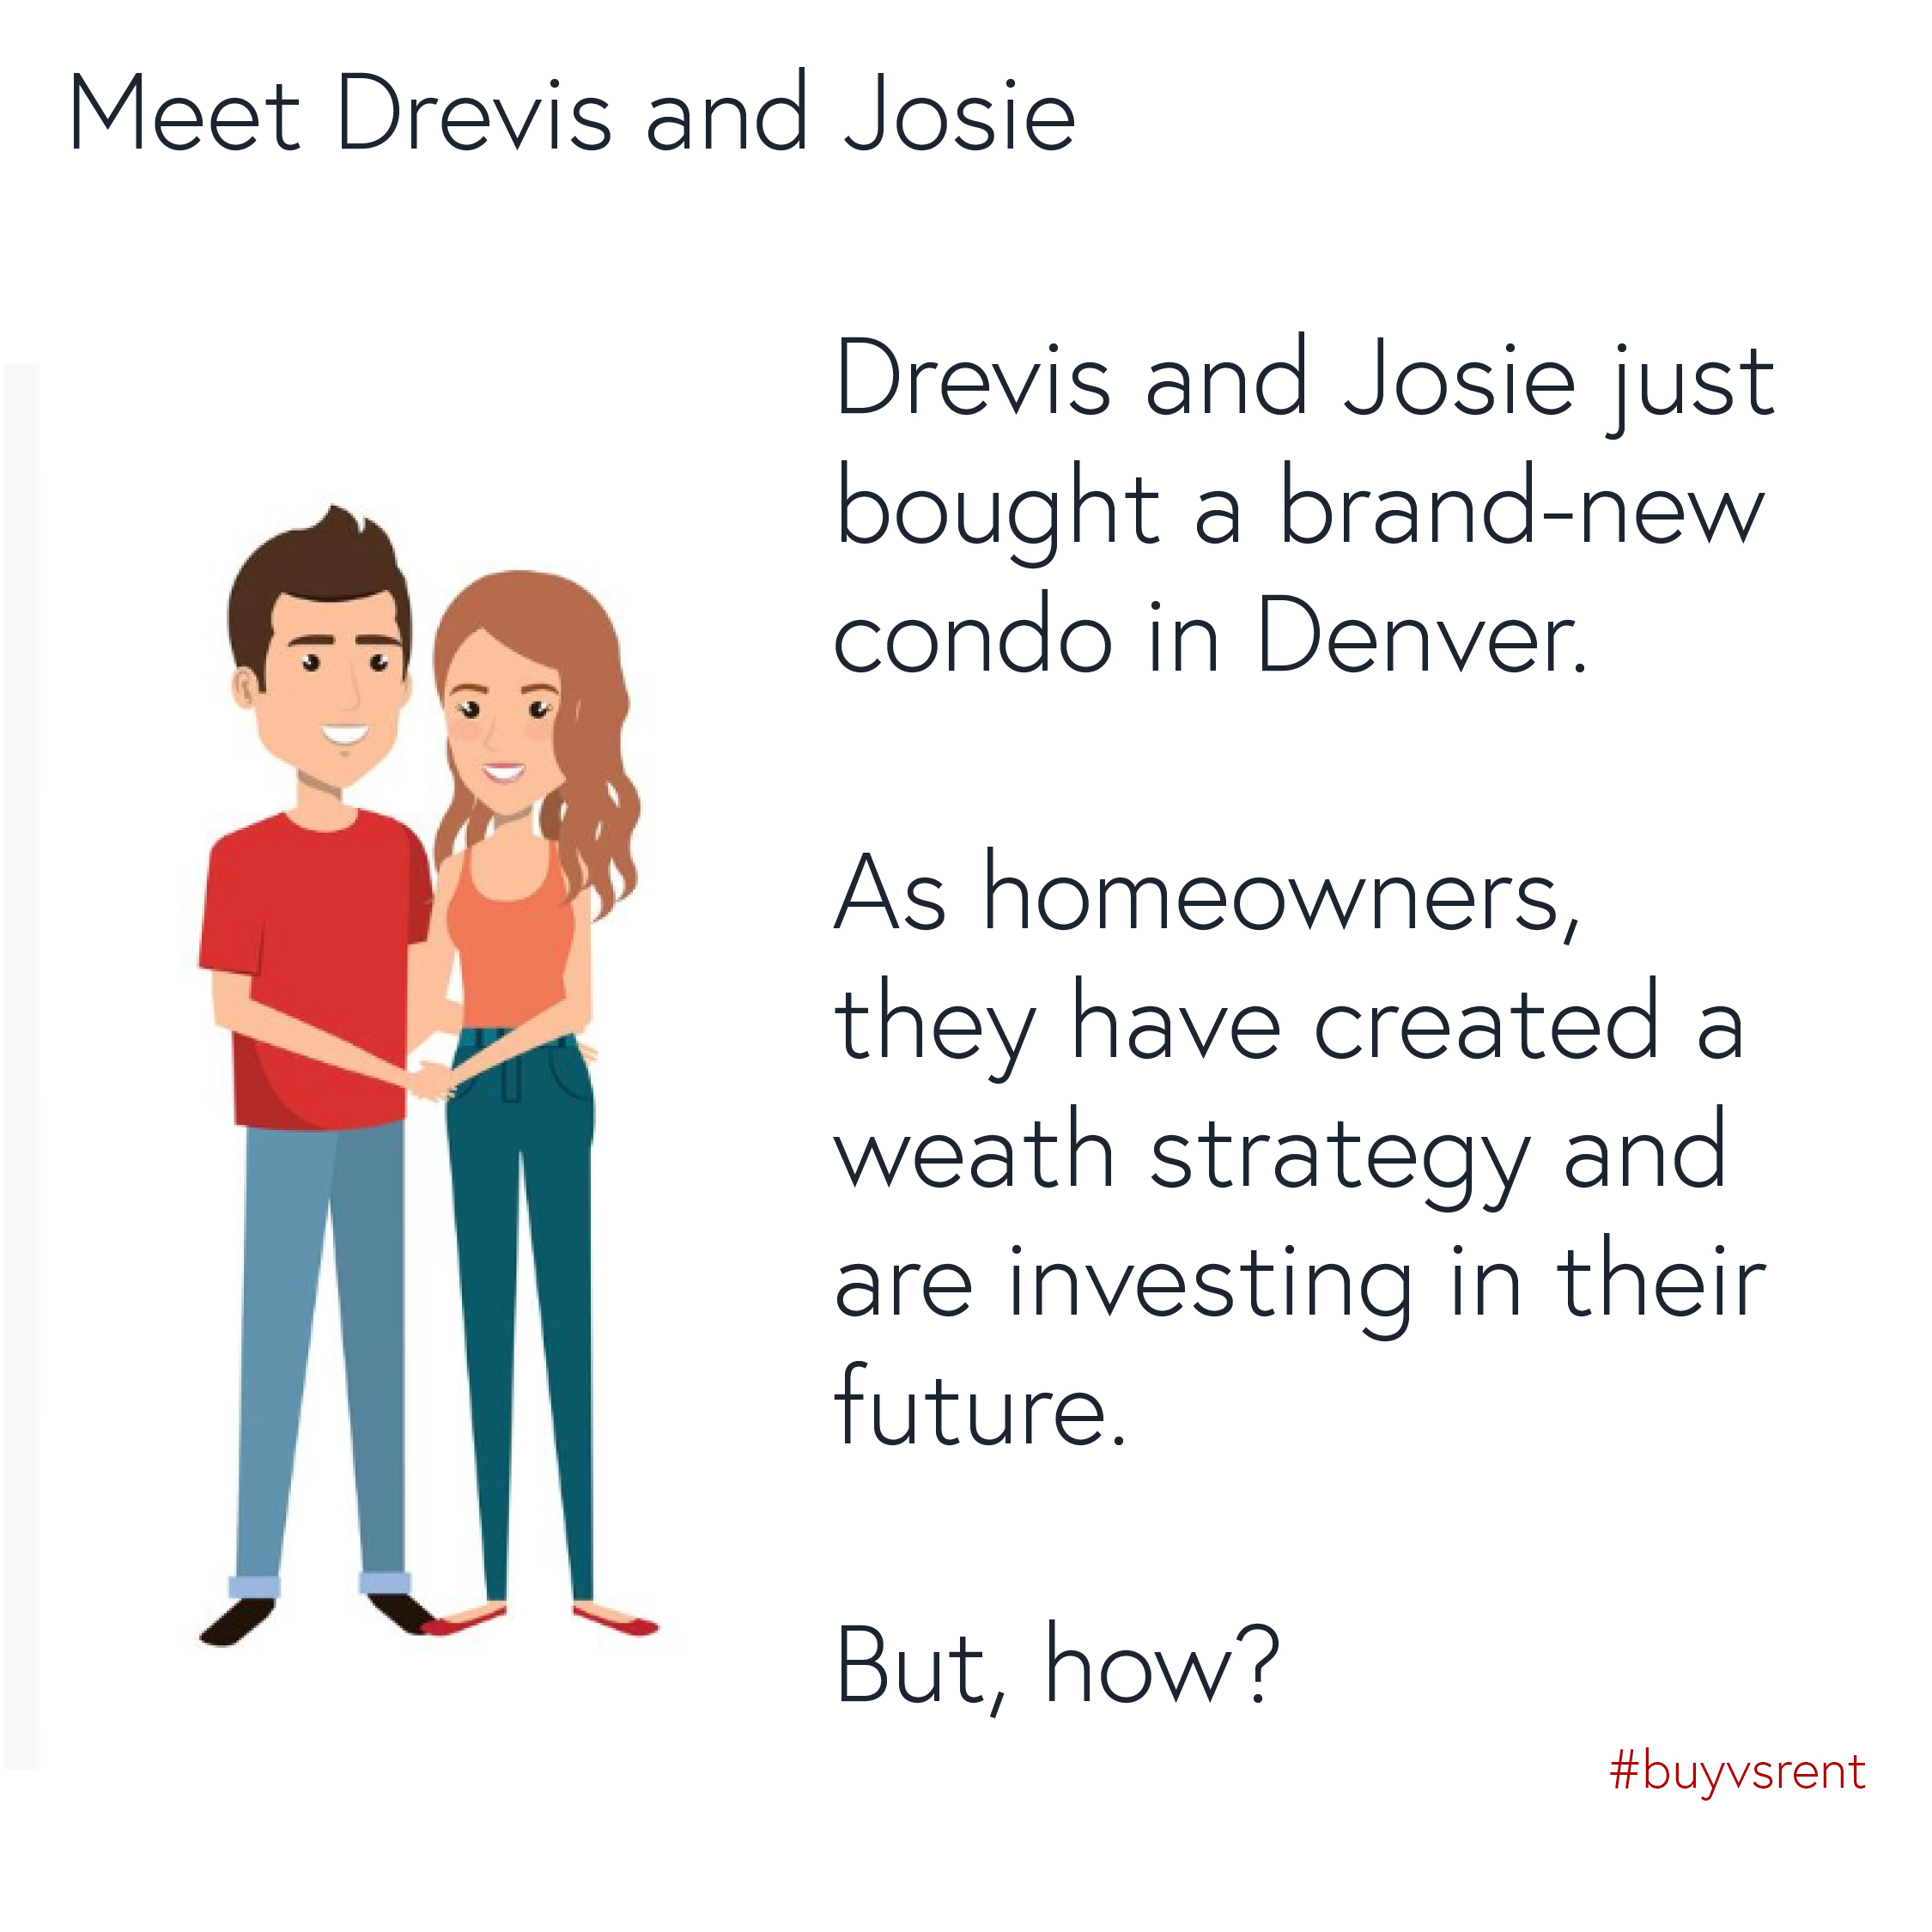 Meet Drevis and Josie-1.jpg